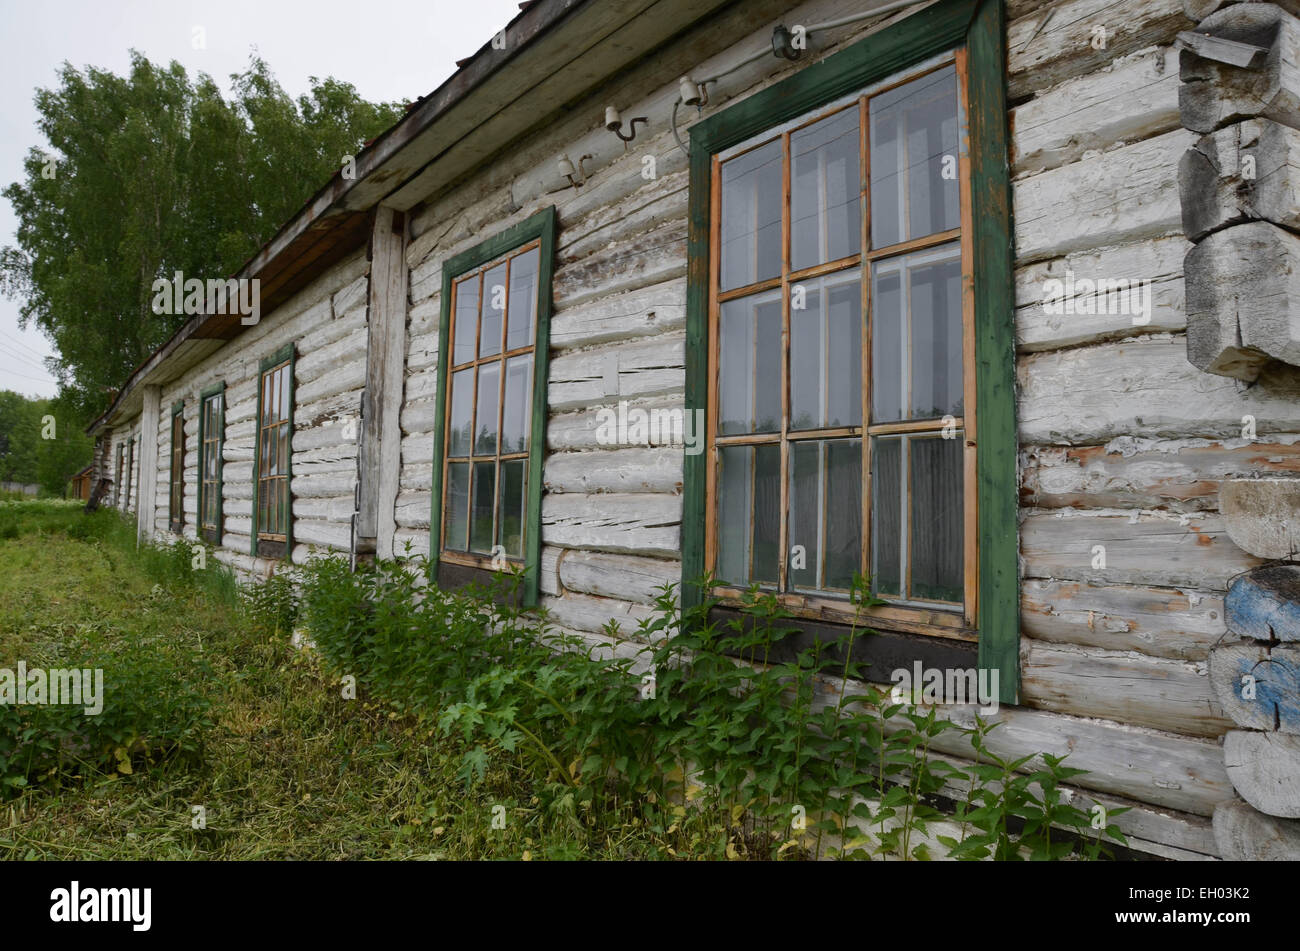 The former soviet gulag camp of Perm36, west of the Ural range in Russia near the town of Perm. A barrack for prisoners. - Stock Image